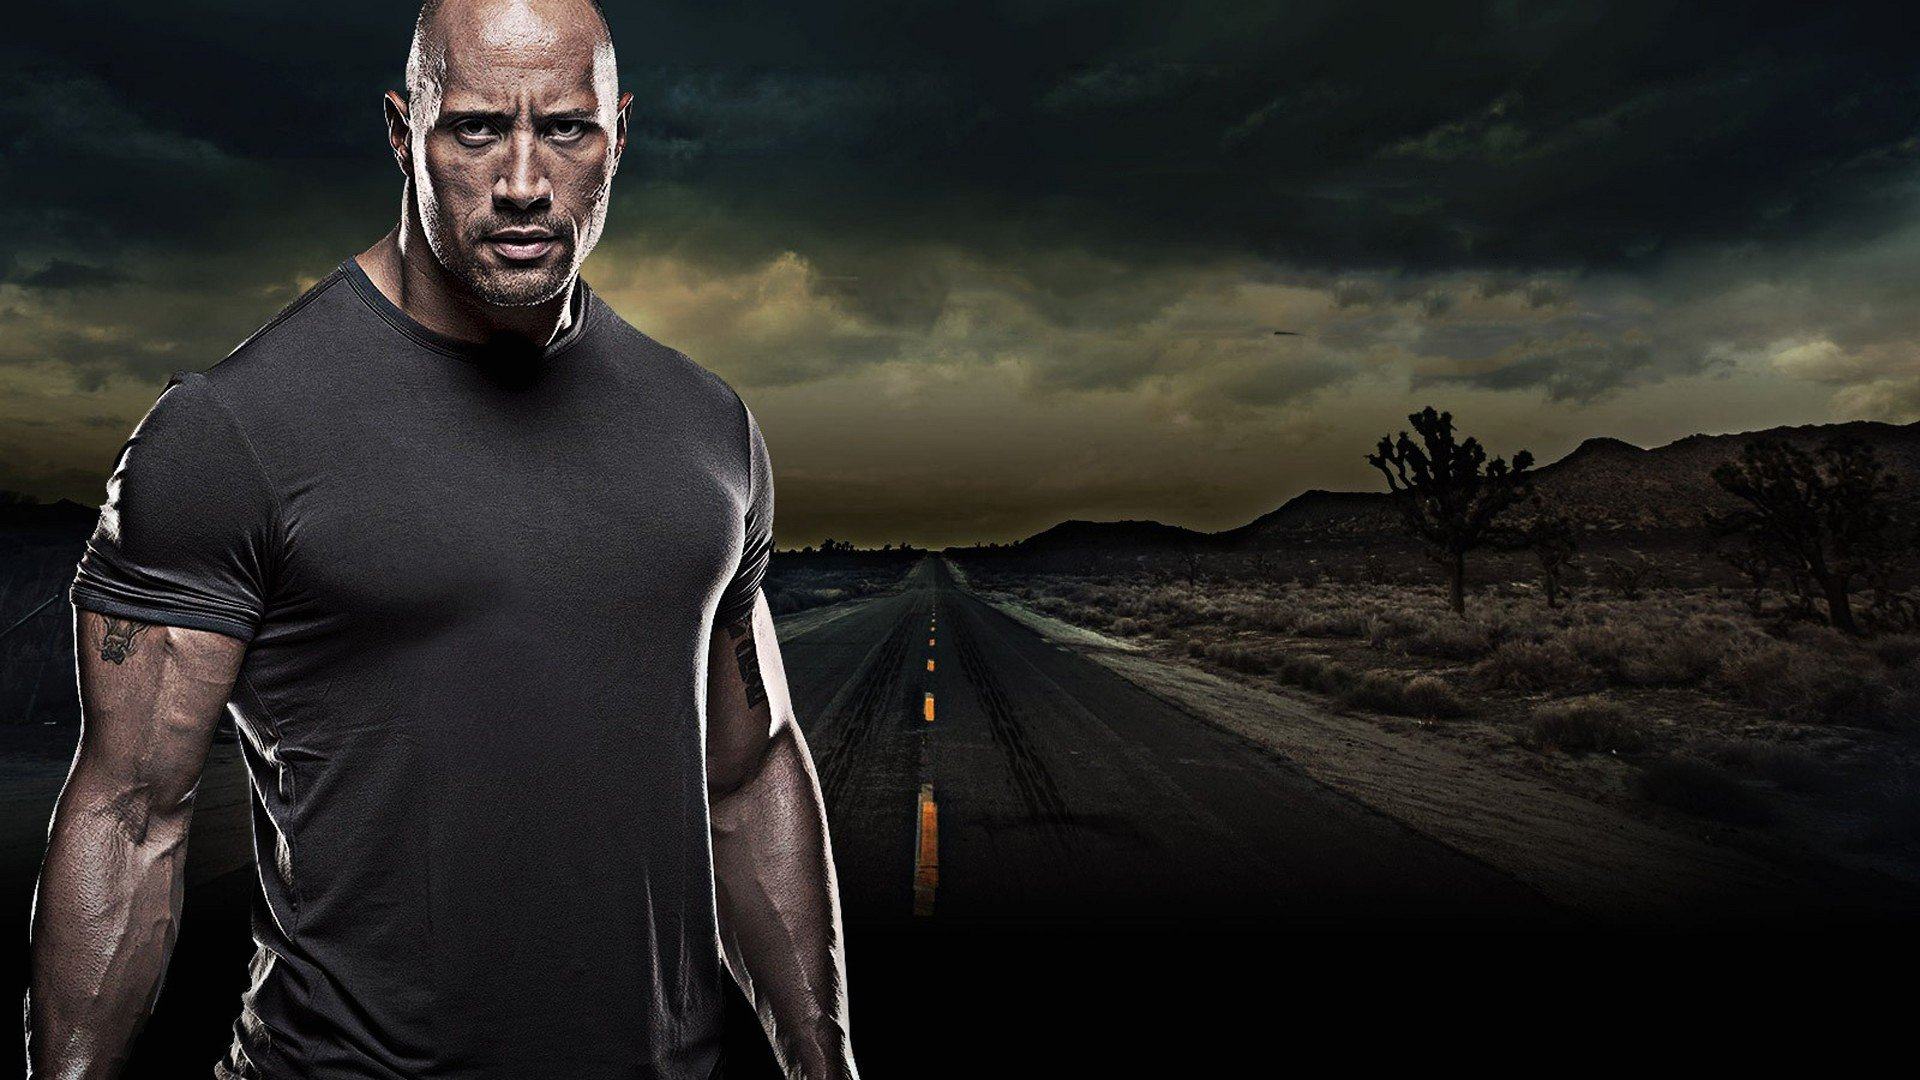 the rock images wallpapers (42 wallpapers) – adorable wallpapers